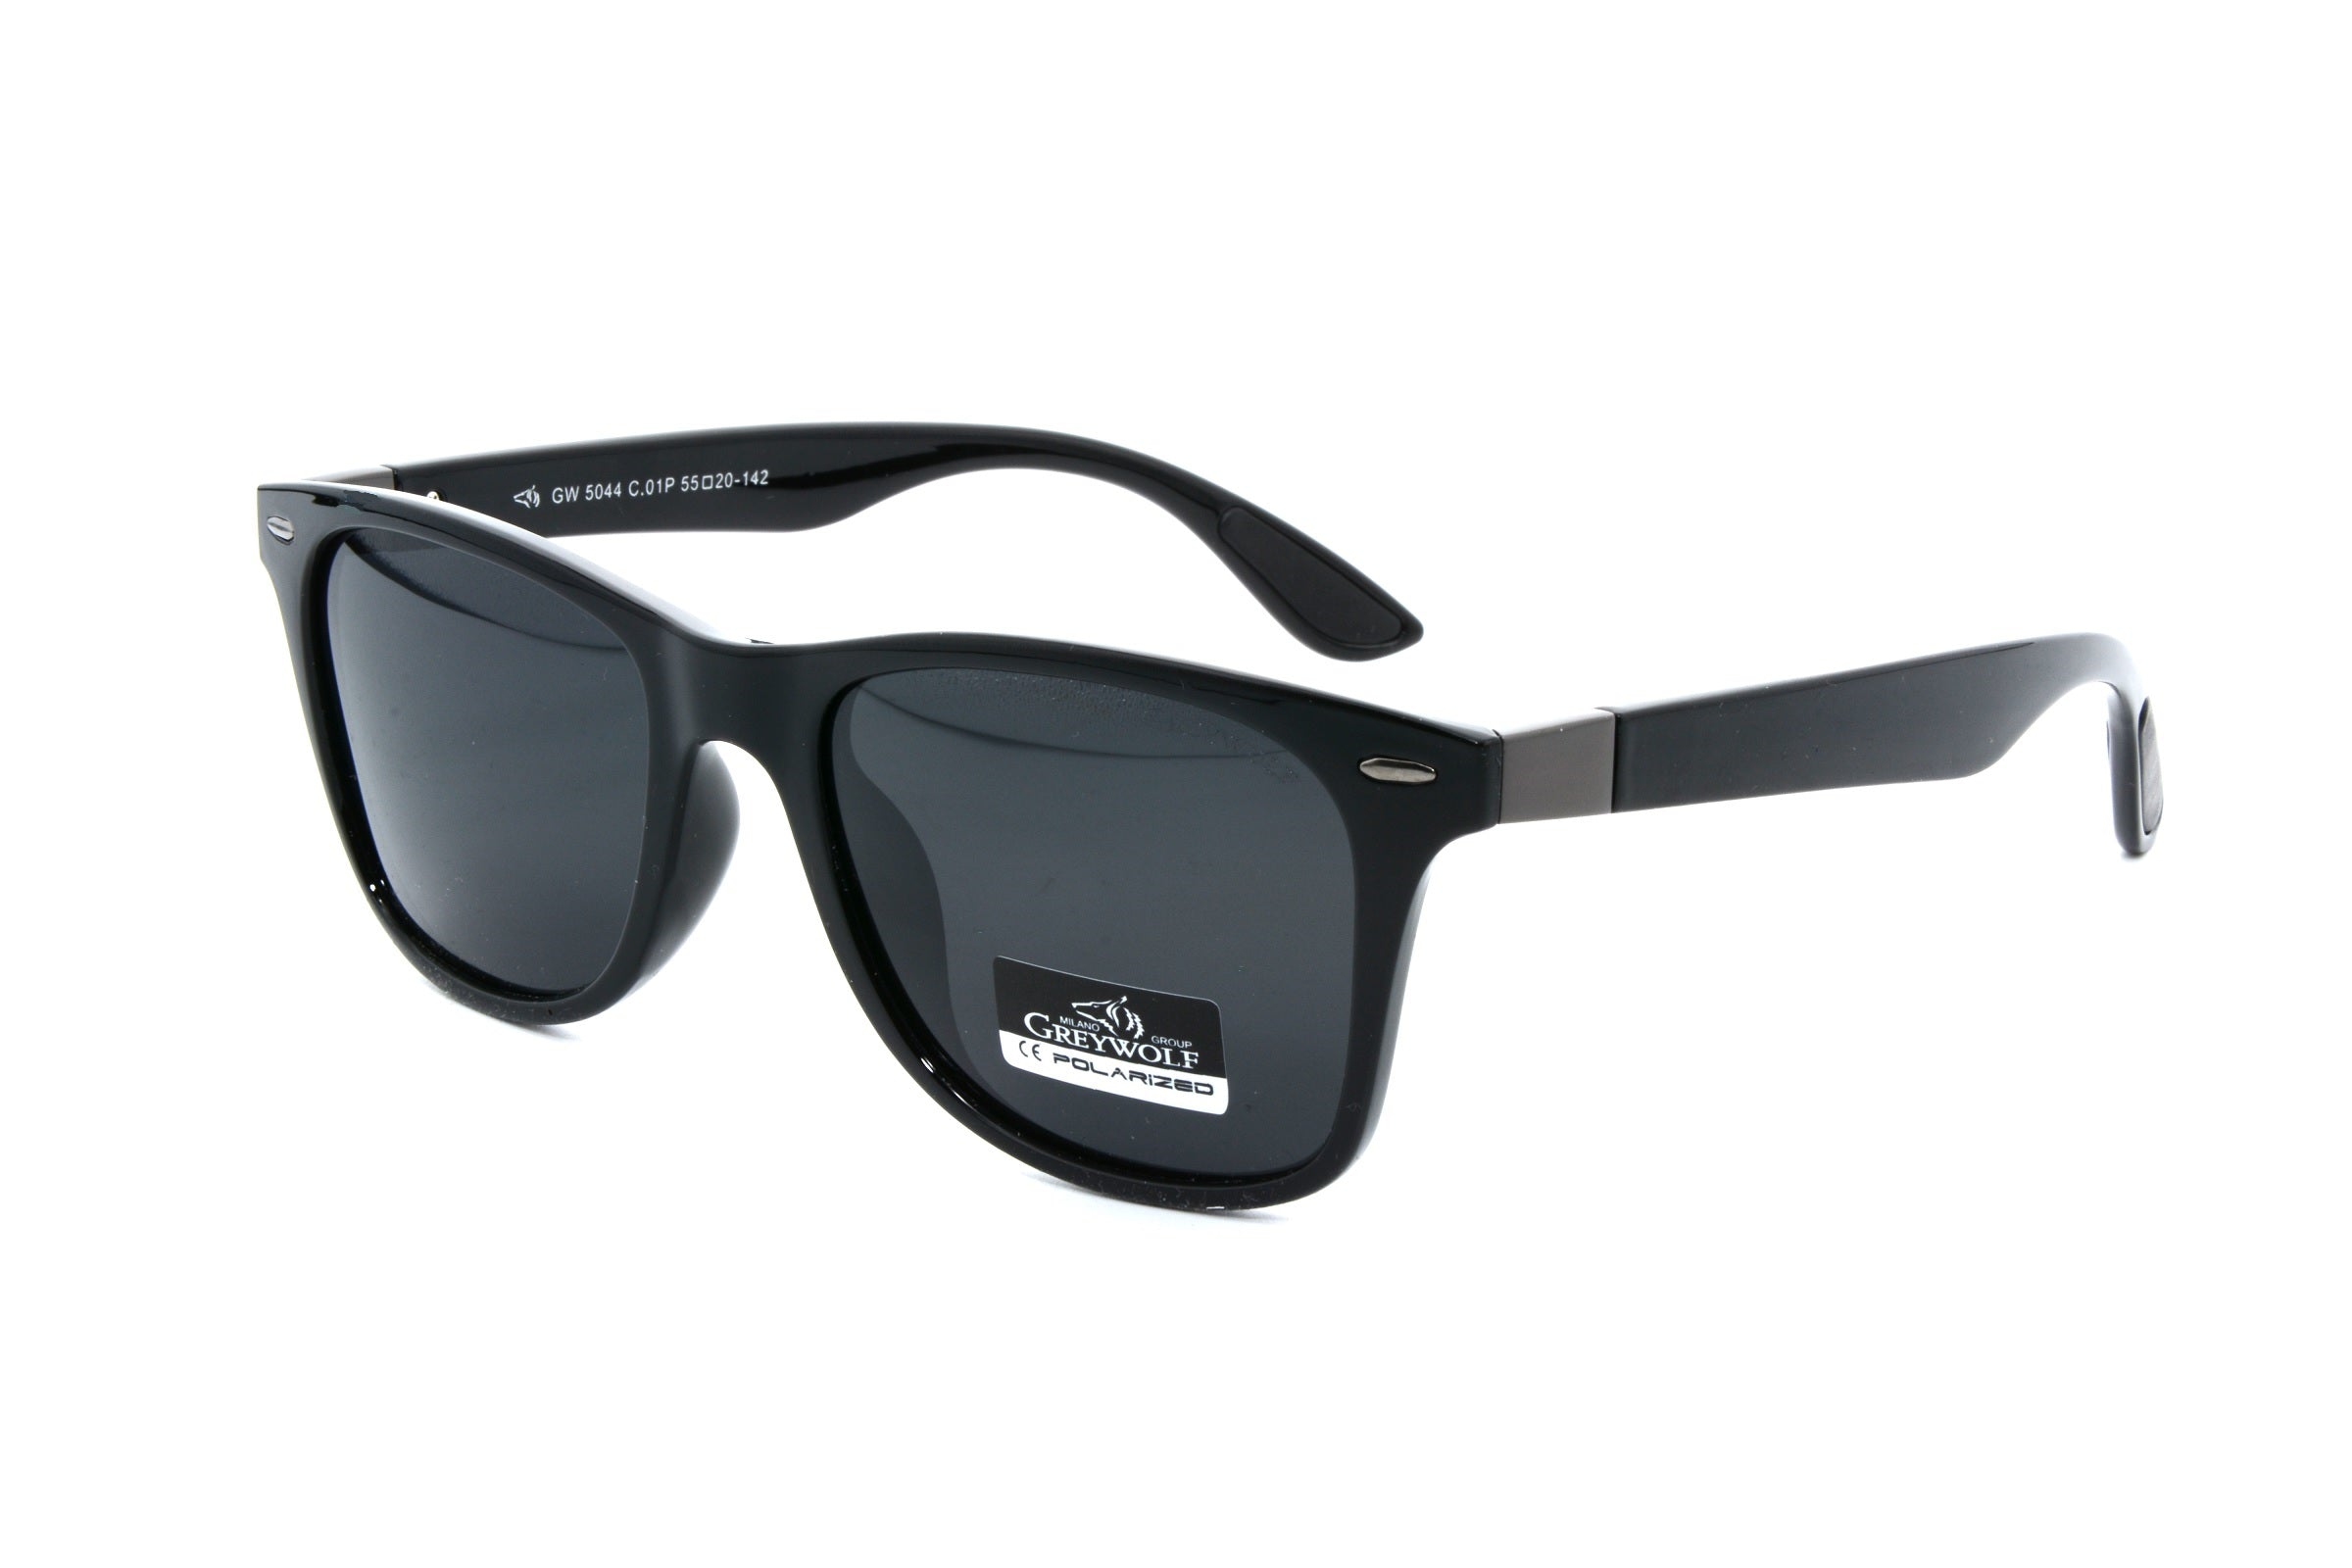 Grey Wolf sunglasses 5044 C01P